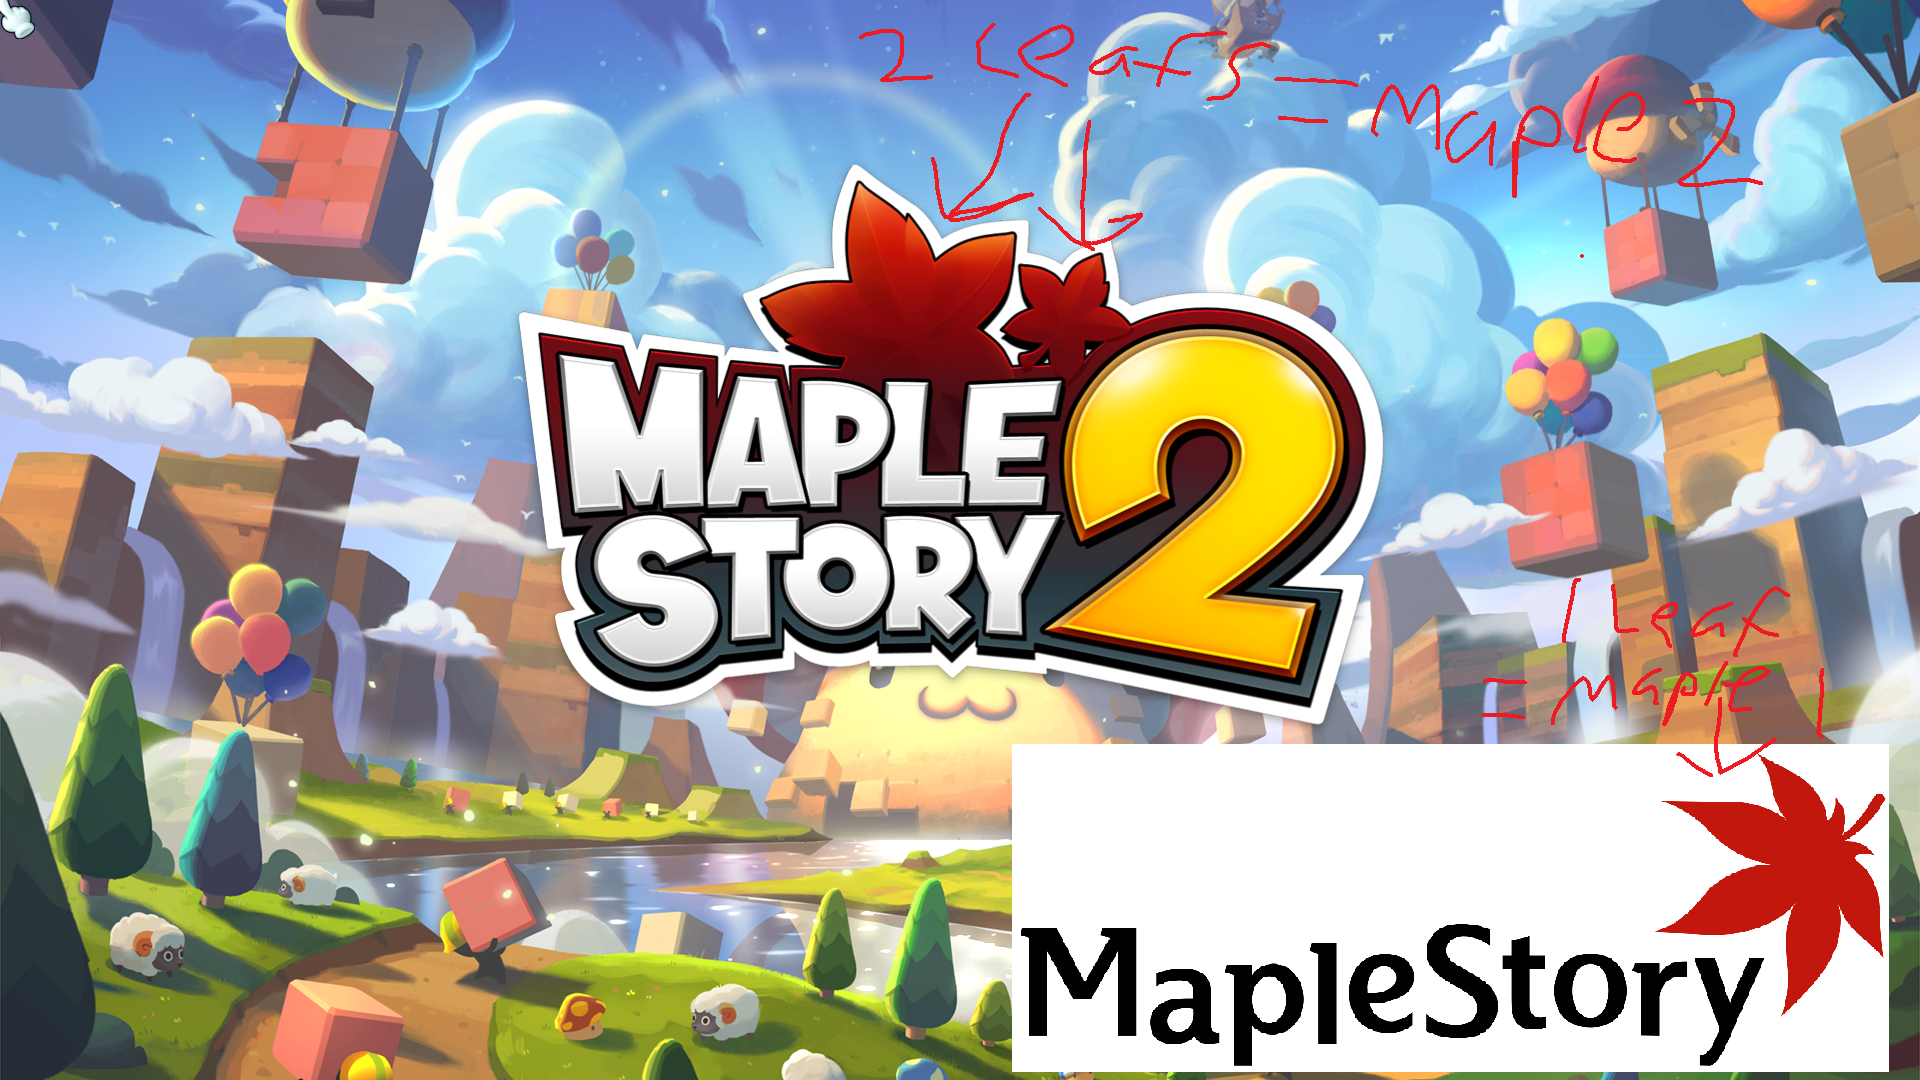 I just noticed that the logo has 2 maple leafs for.